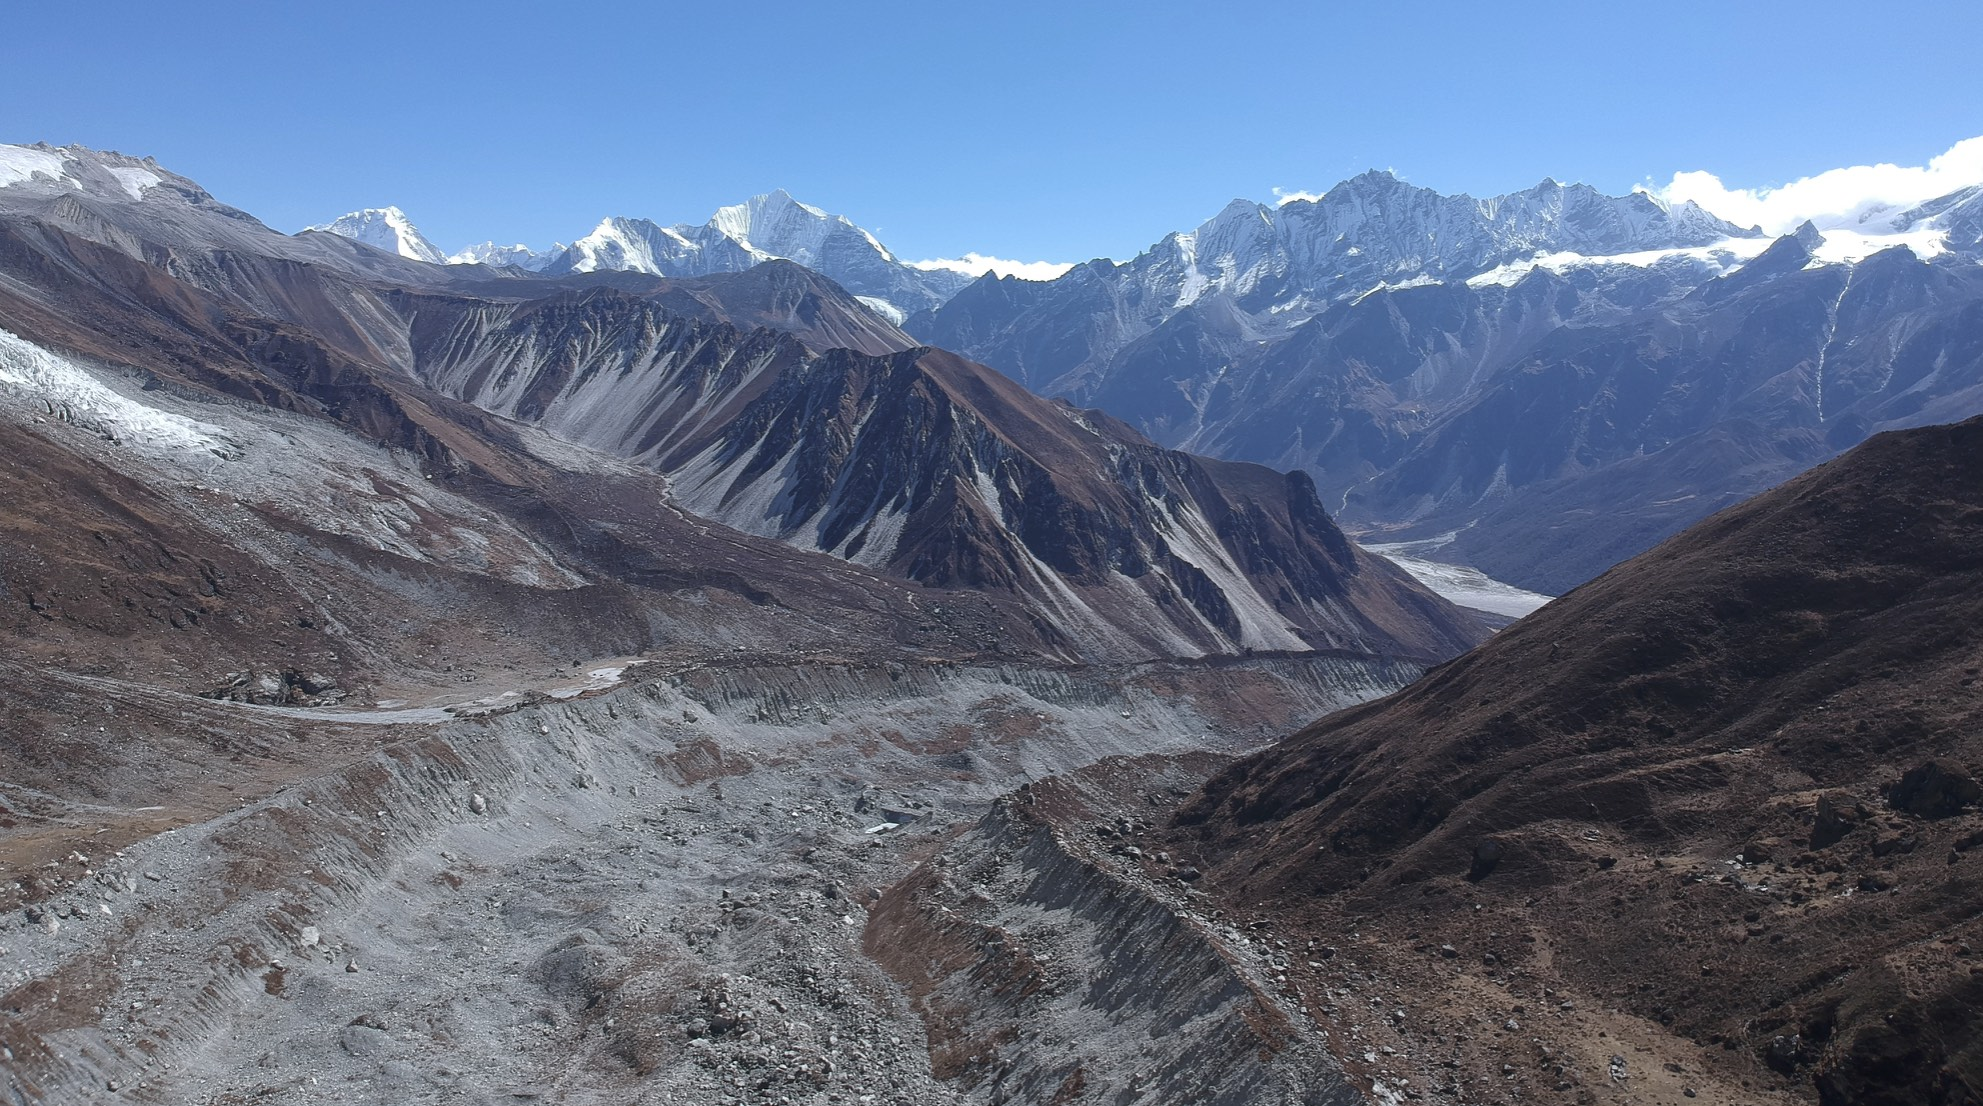 Langtang Lirung Glacier - Looking at the Langtang Valley 5 km away and 800m below.